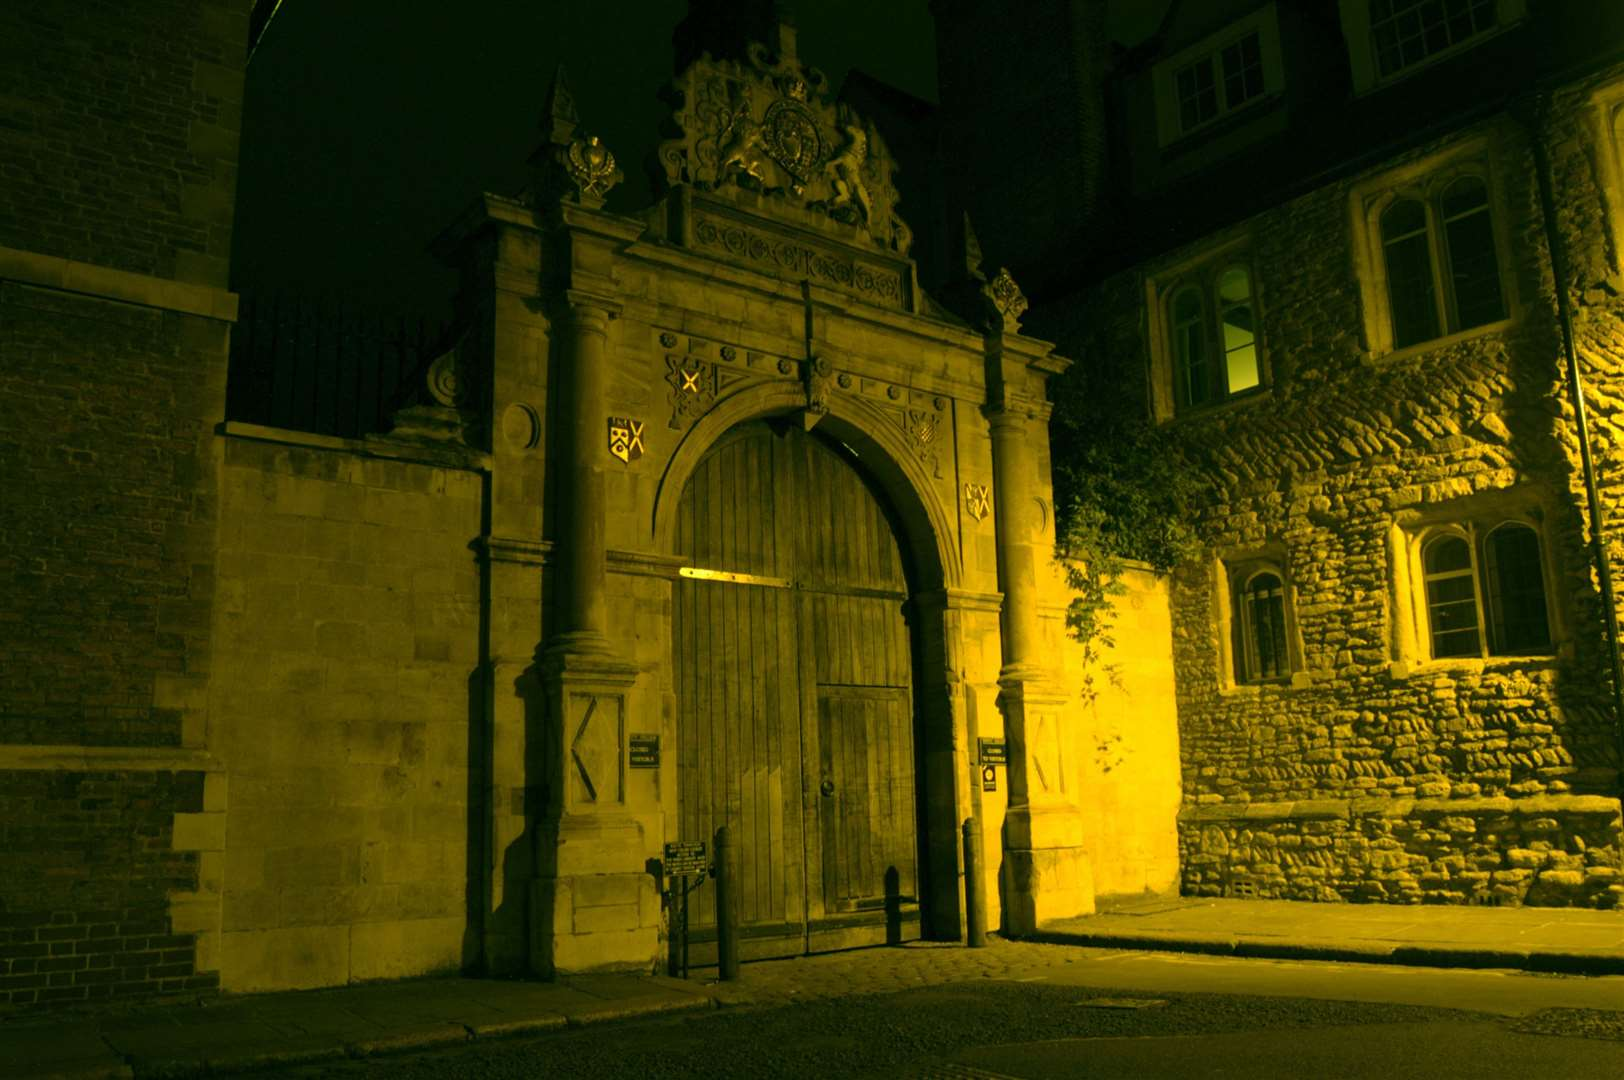 The Ghost Tours in Cambridge take place after dark